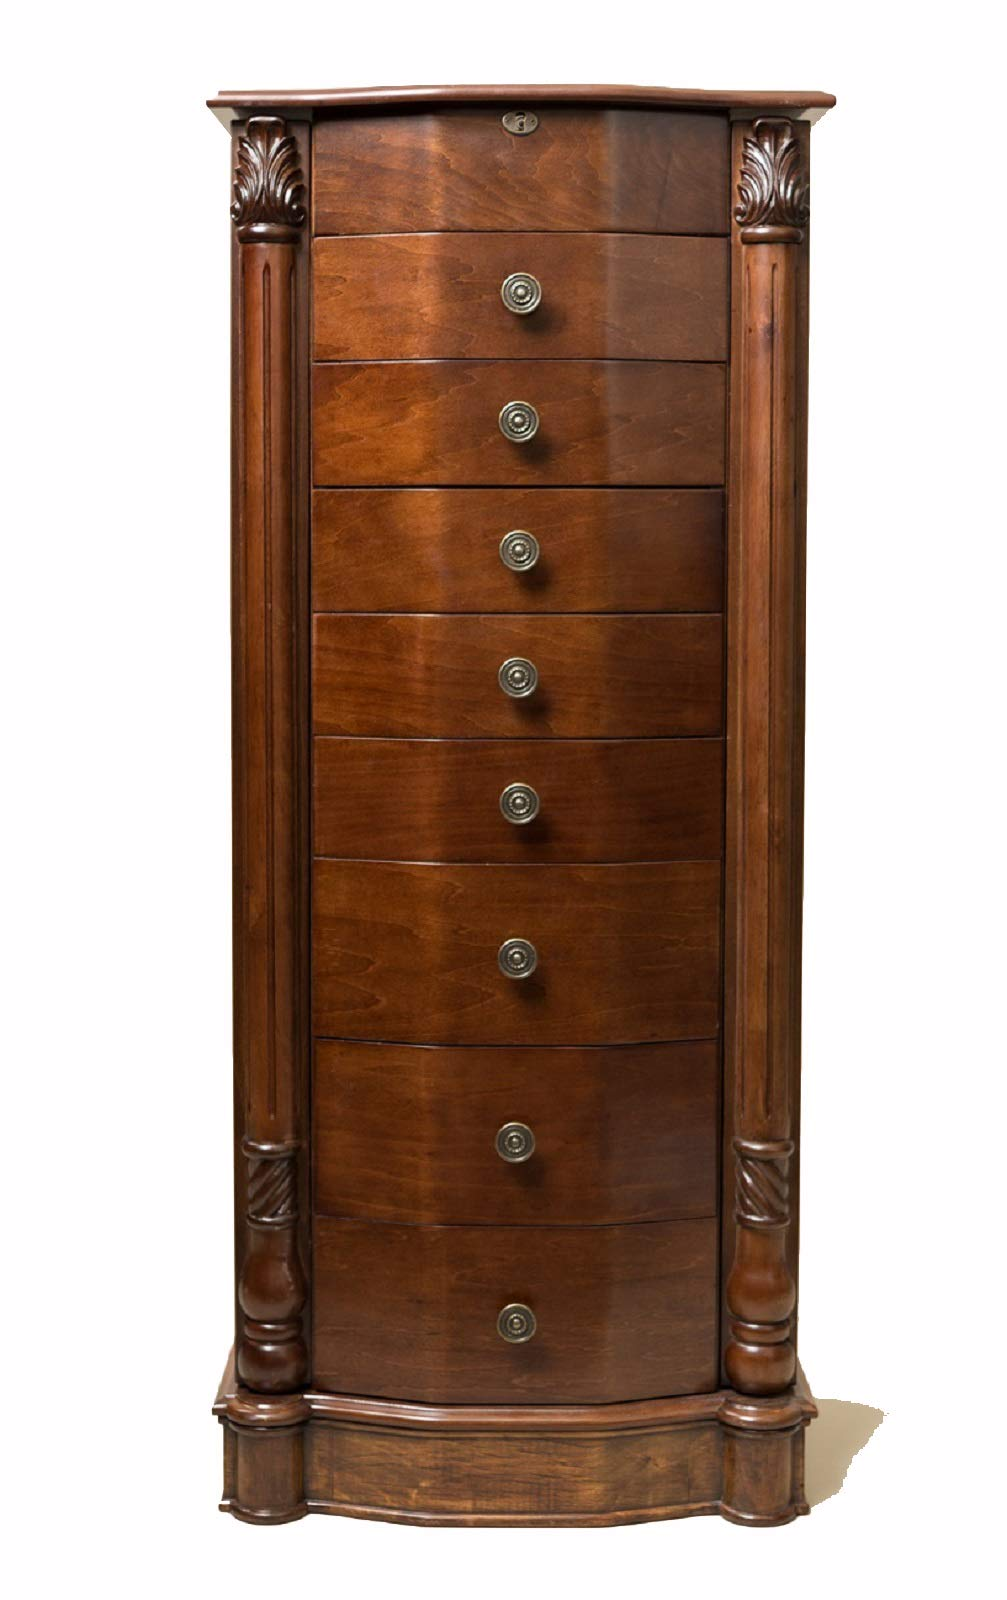 Hives and Honey 2417-654 Henry IV Jewelry Armoire, 39.75'' H x 17.25'' W x 11.6'' D, Walnut by Hives and Honey (Image #1)